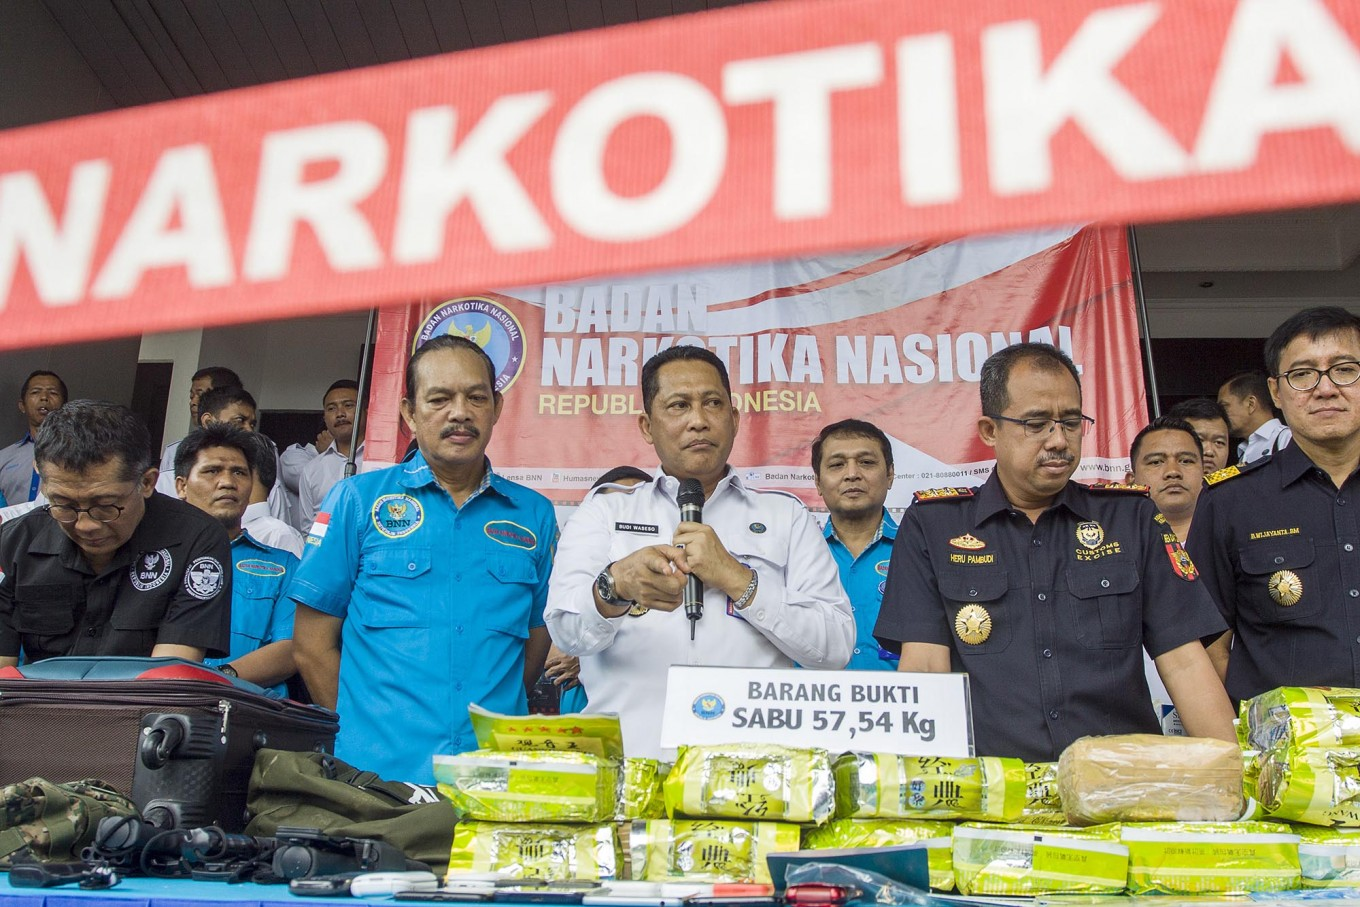 Man arrested in Lombok with crystal meth hidden in rectum